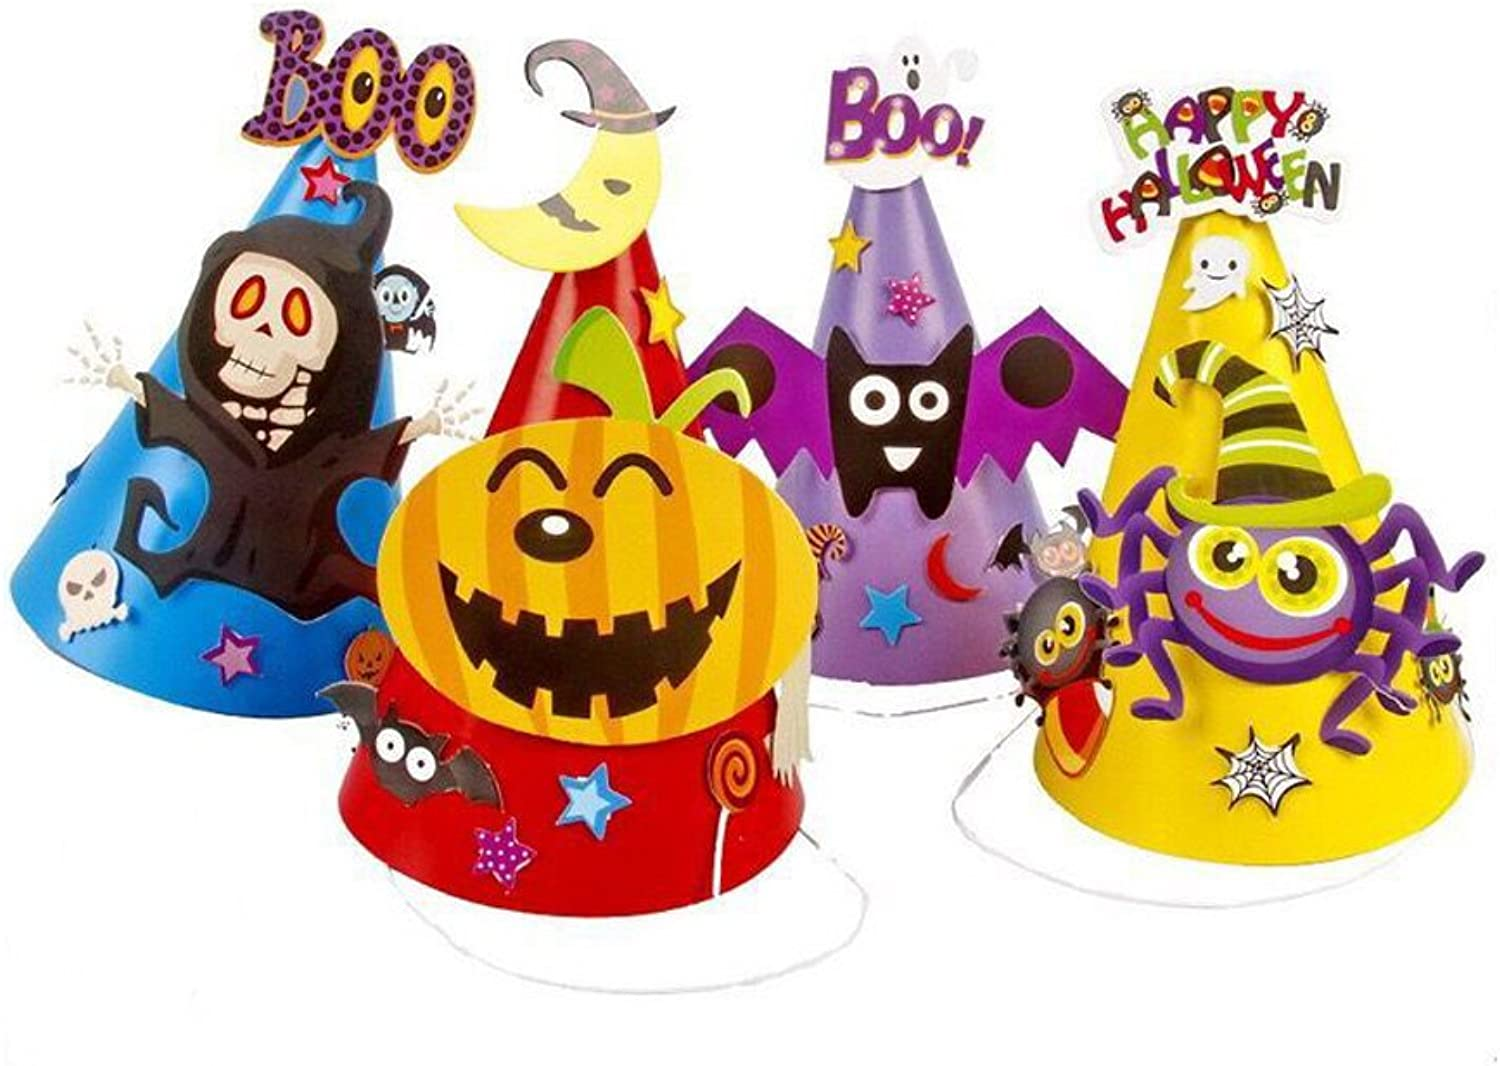 LW 4 pcs Halloween Party DIY Paper Cartoon Hat, Hat Witches, Spiders, Pumpkins, Decorations, Party Props for Kids